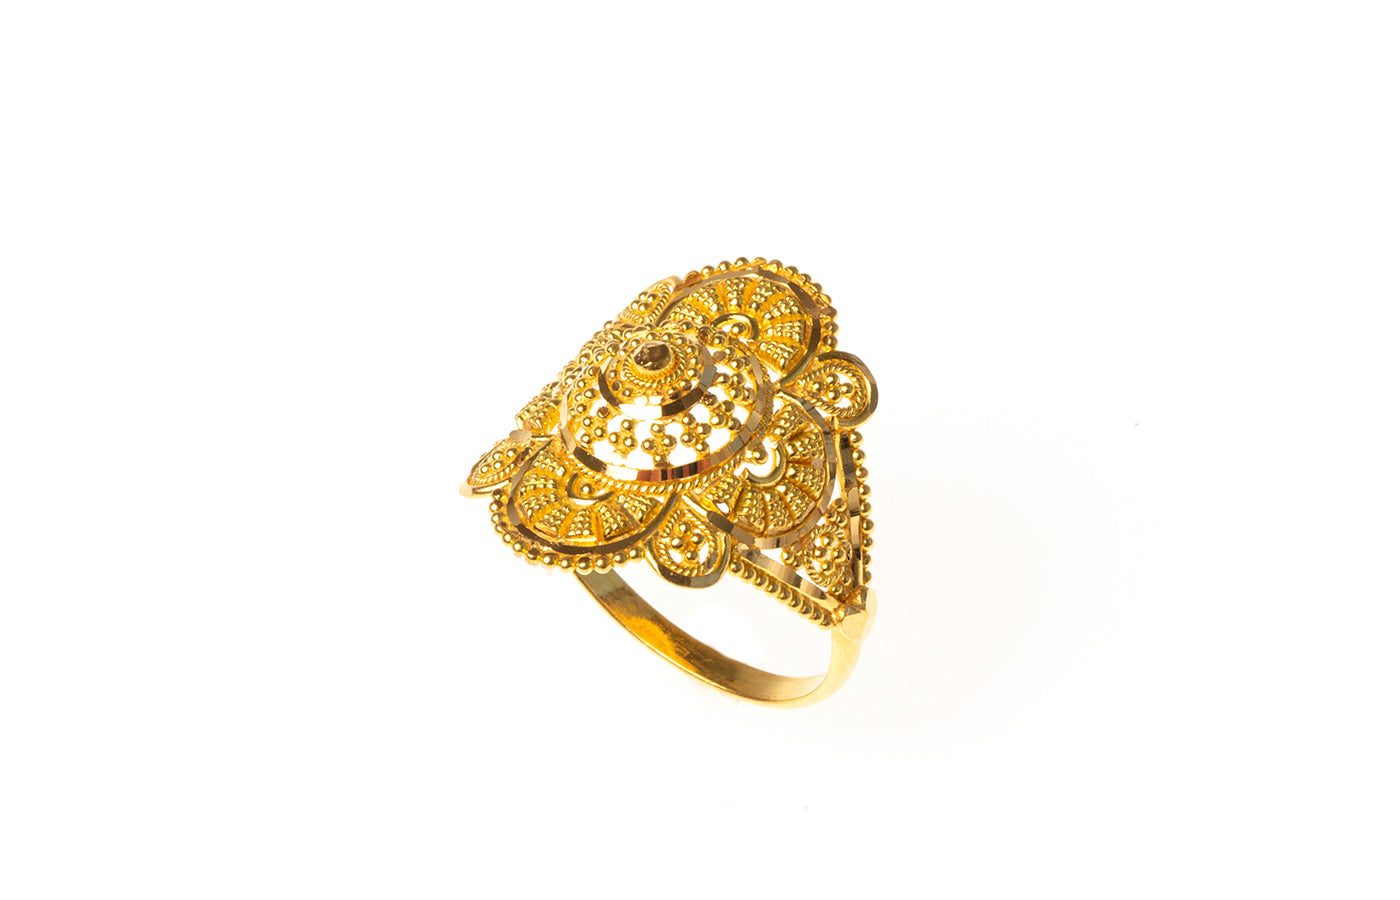 22ct Gold Filigree Dress Ring (3.5g) LR-7824